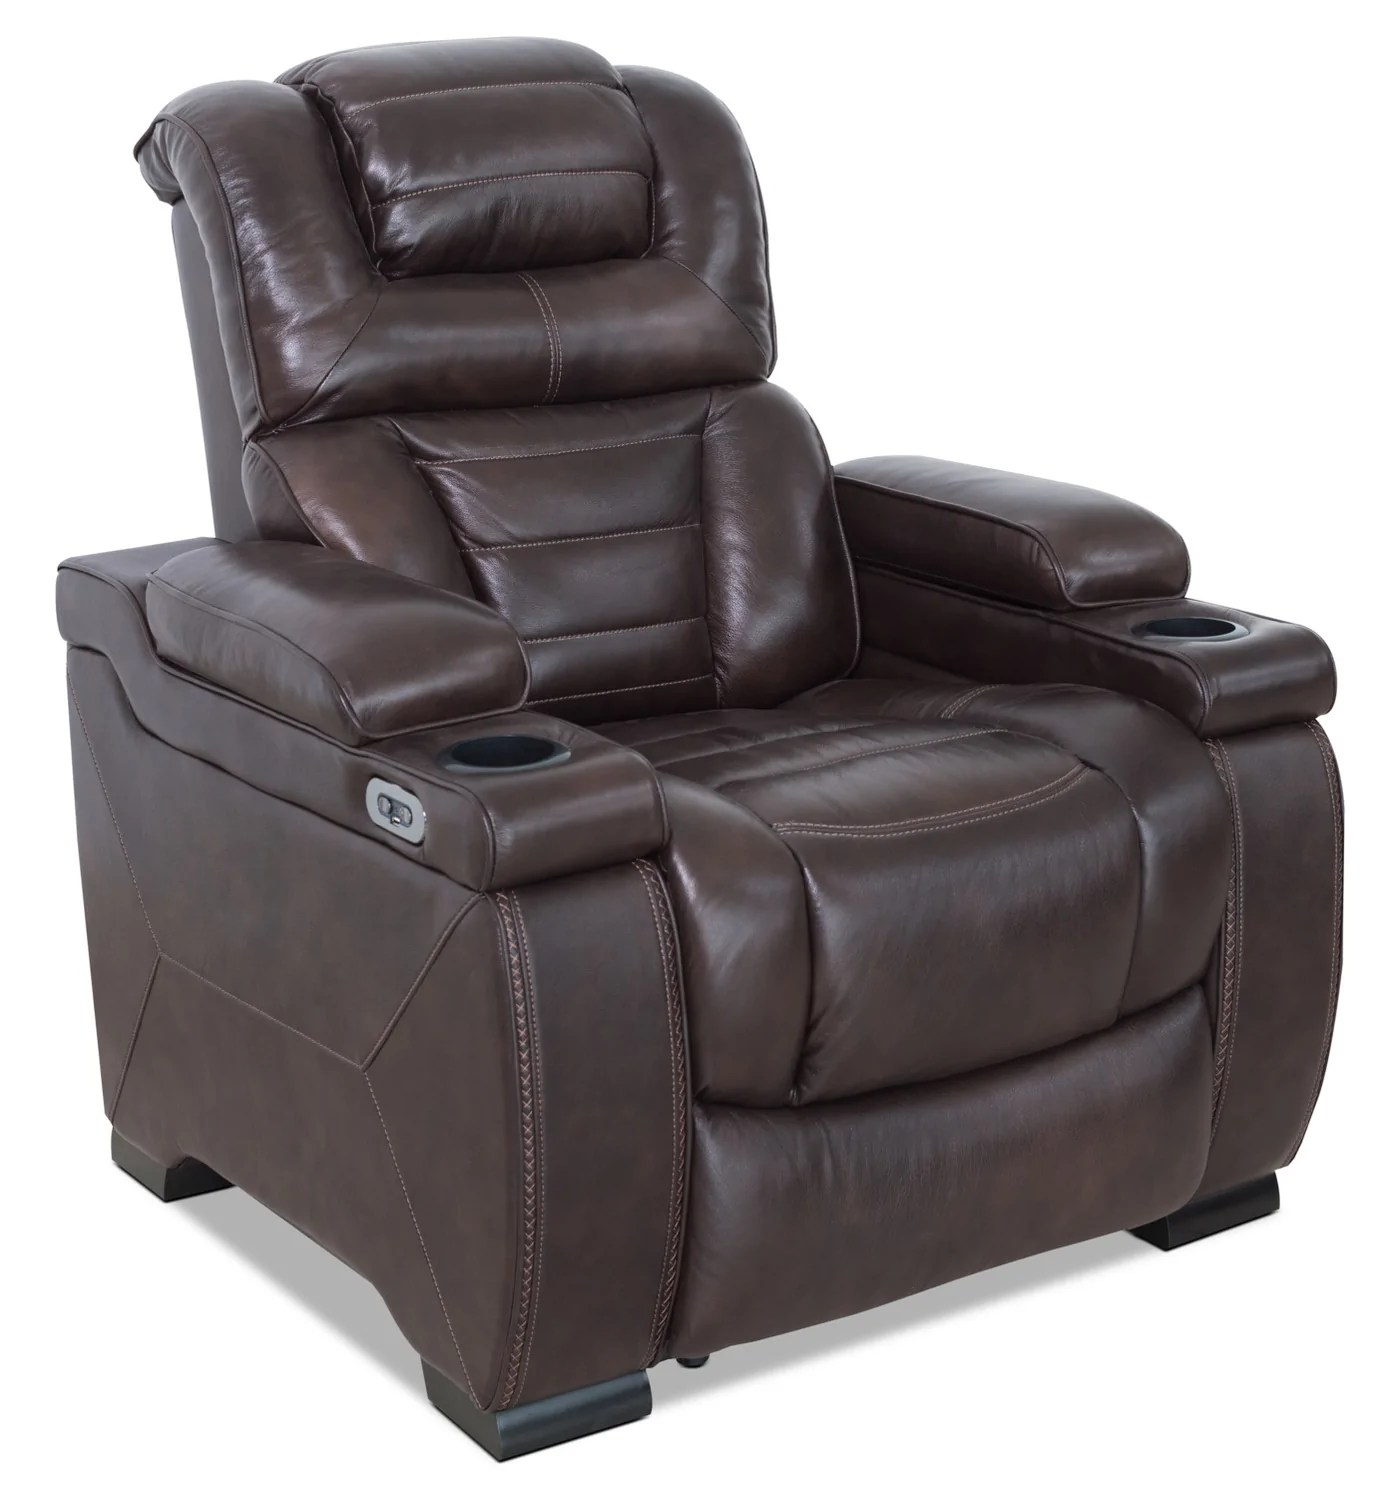 Leather Reclining Chairs Hugo Genuine Leather Power Reclining Chair Brown